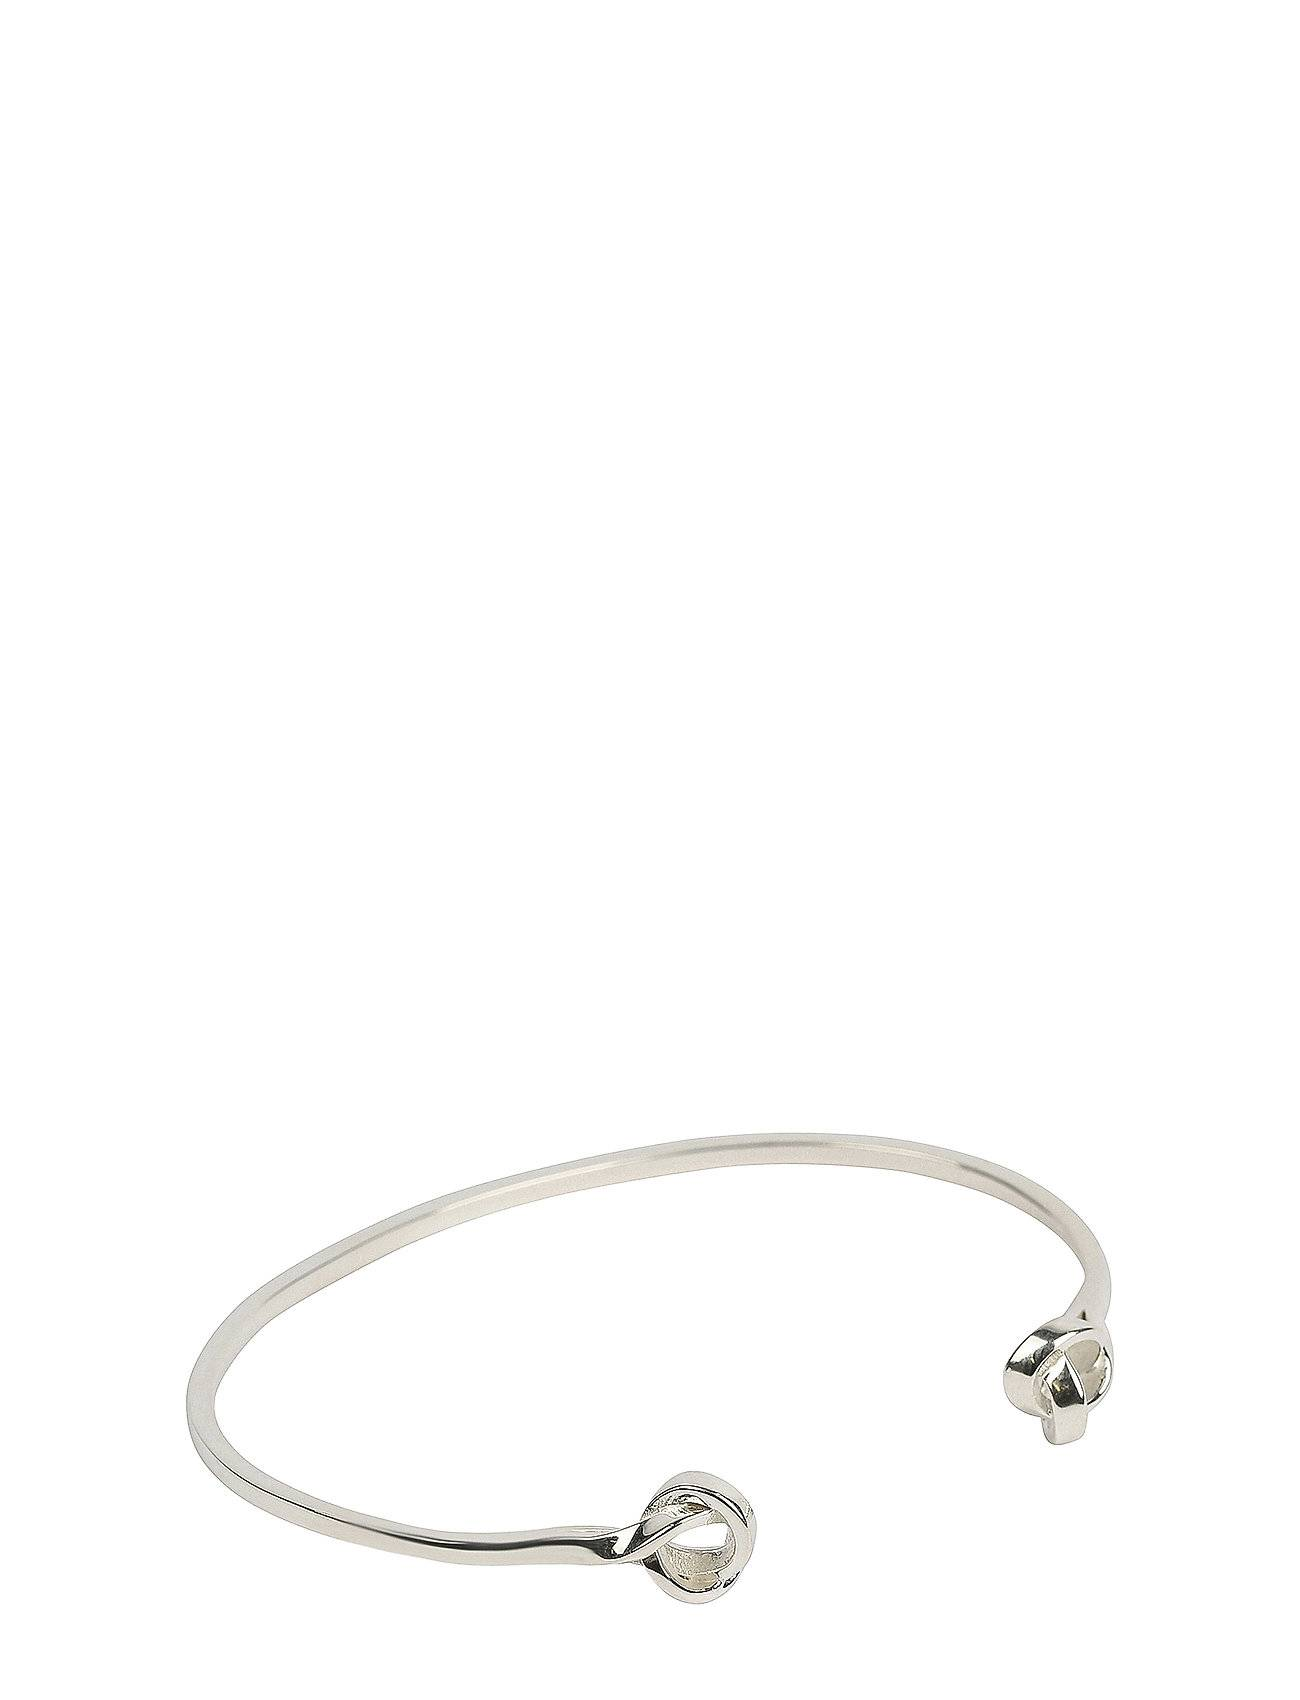 Syster P Tied Bangle Silver Accessories Jewellery Bracelets Bangles Hopea Syster P